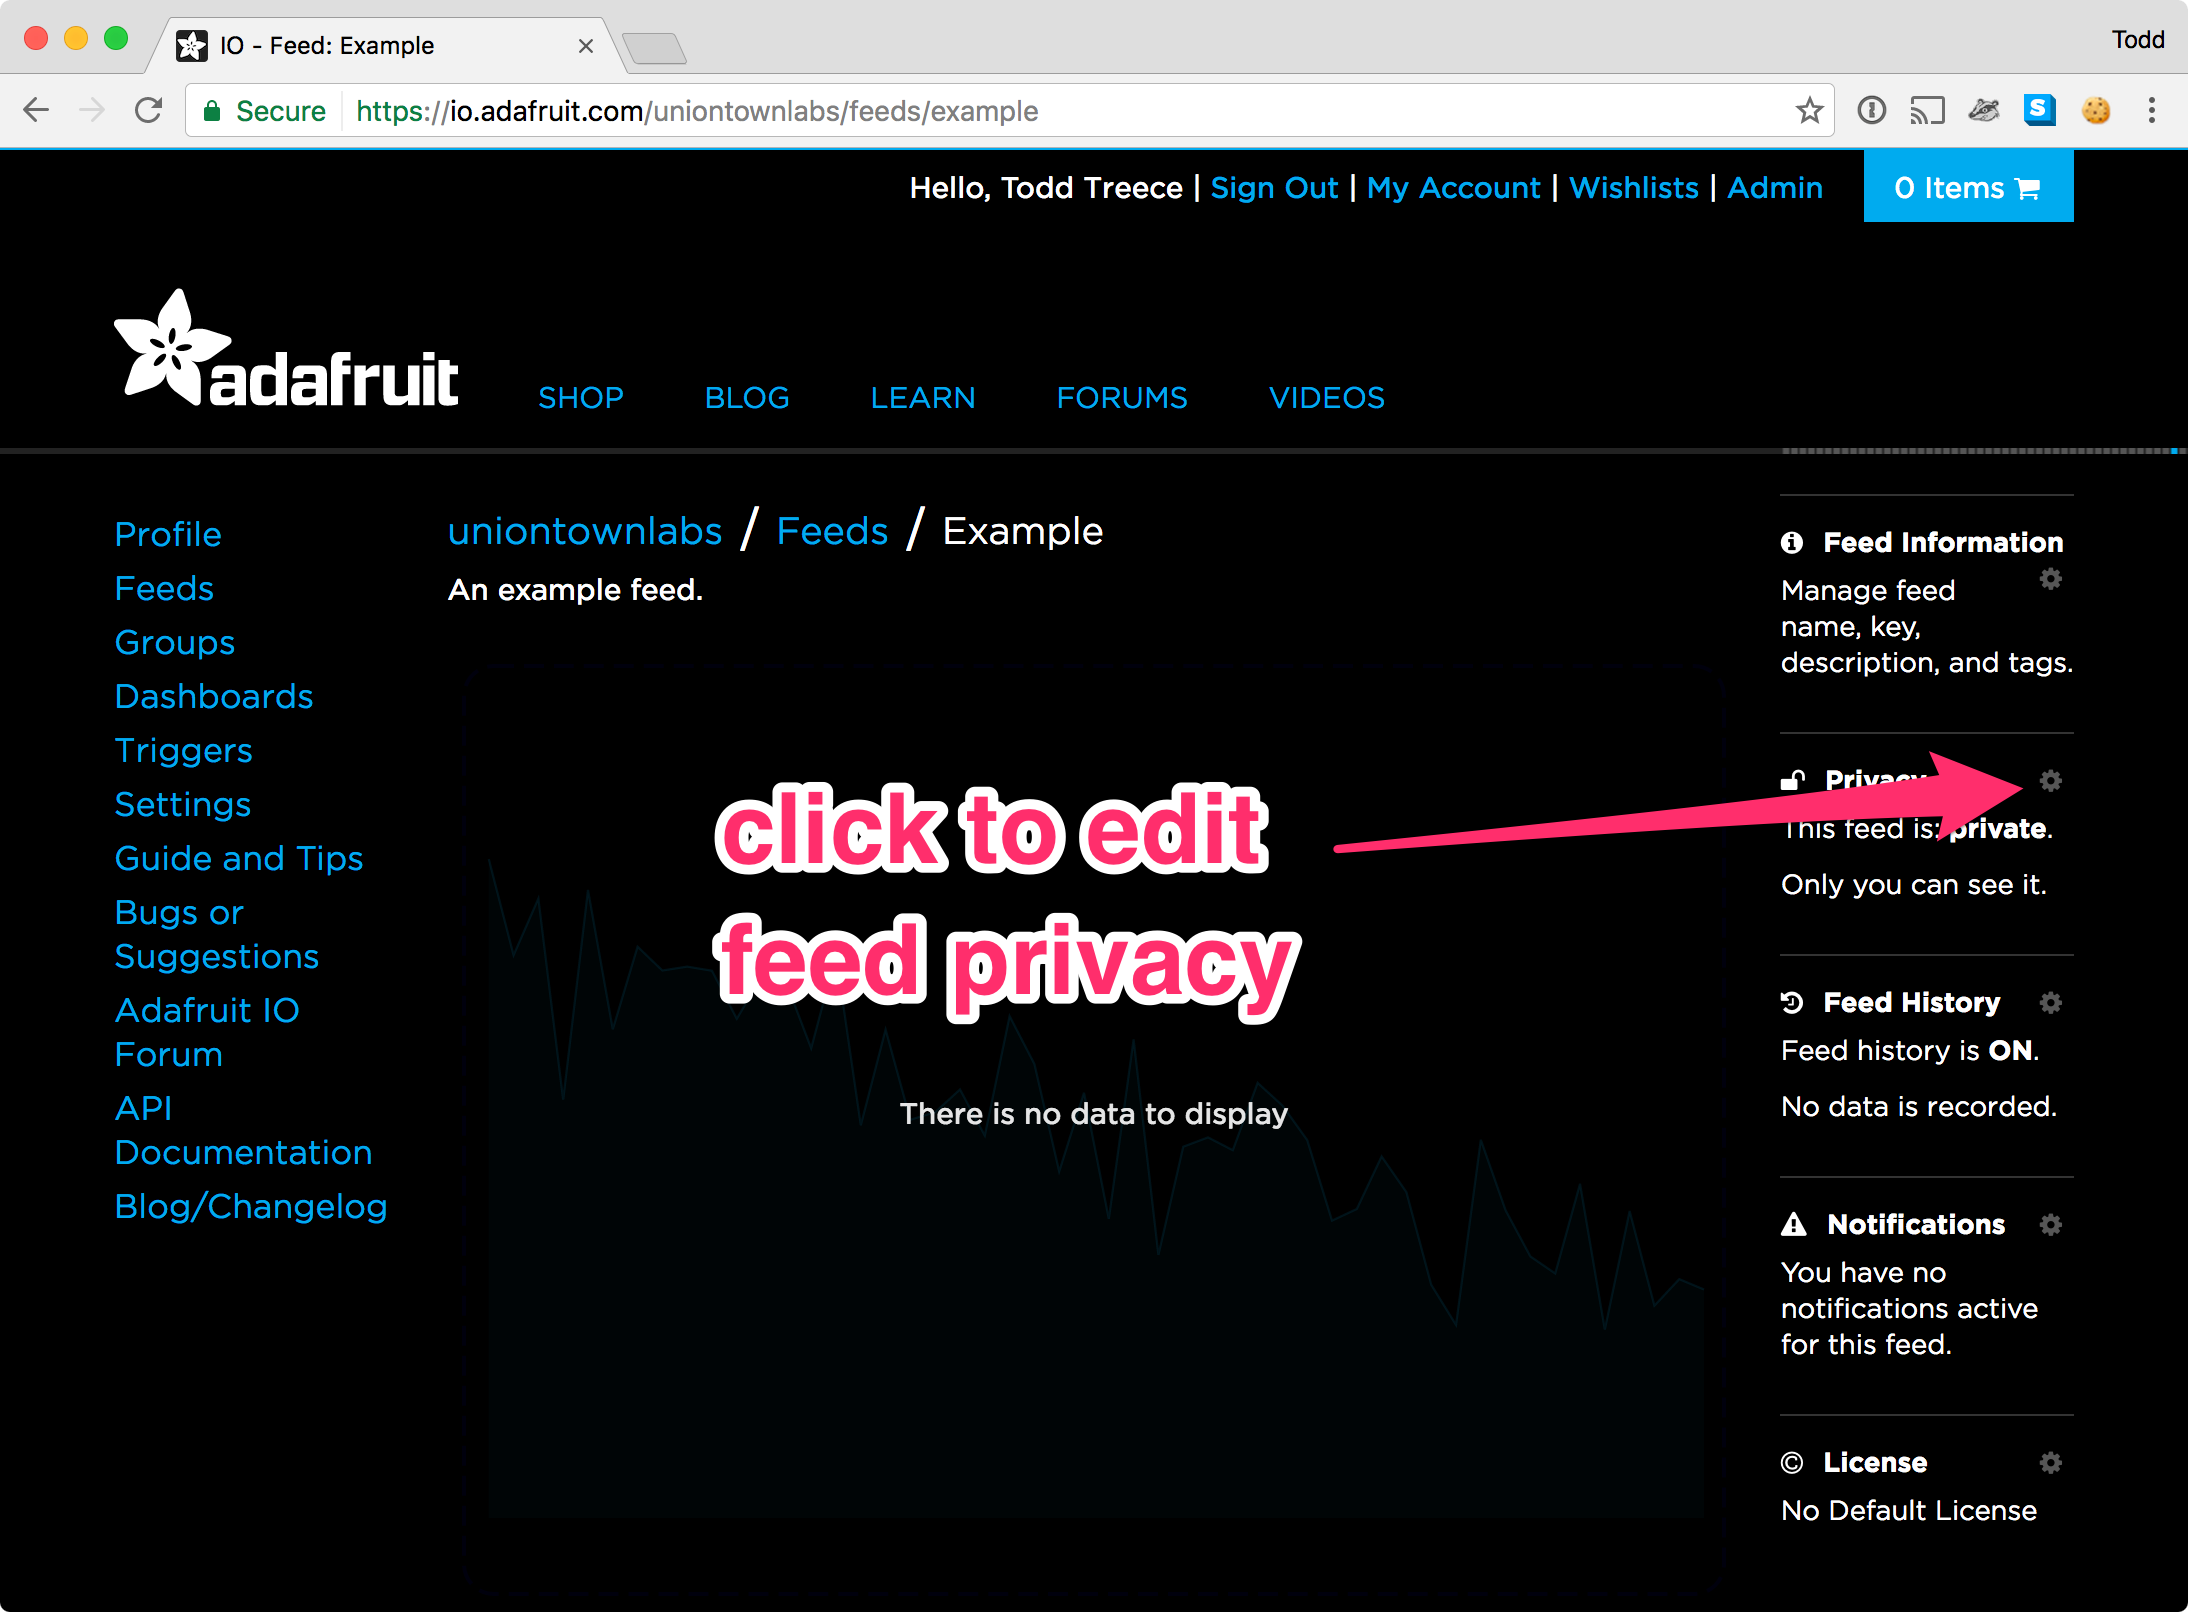 adafruit_io_07_feed_privacy.png